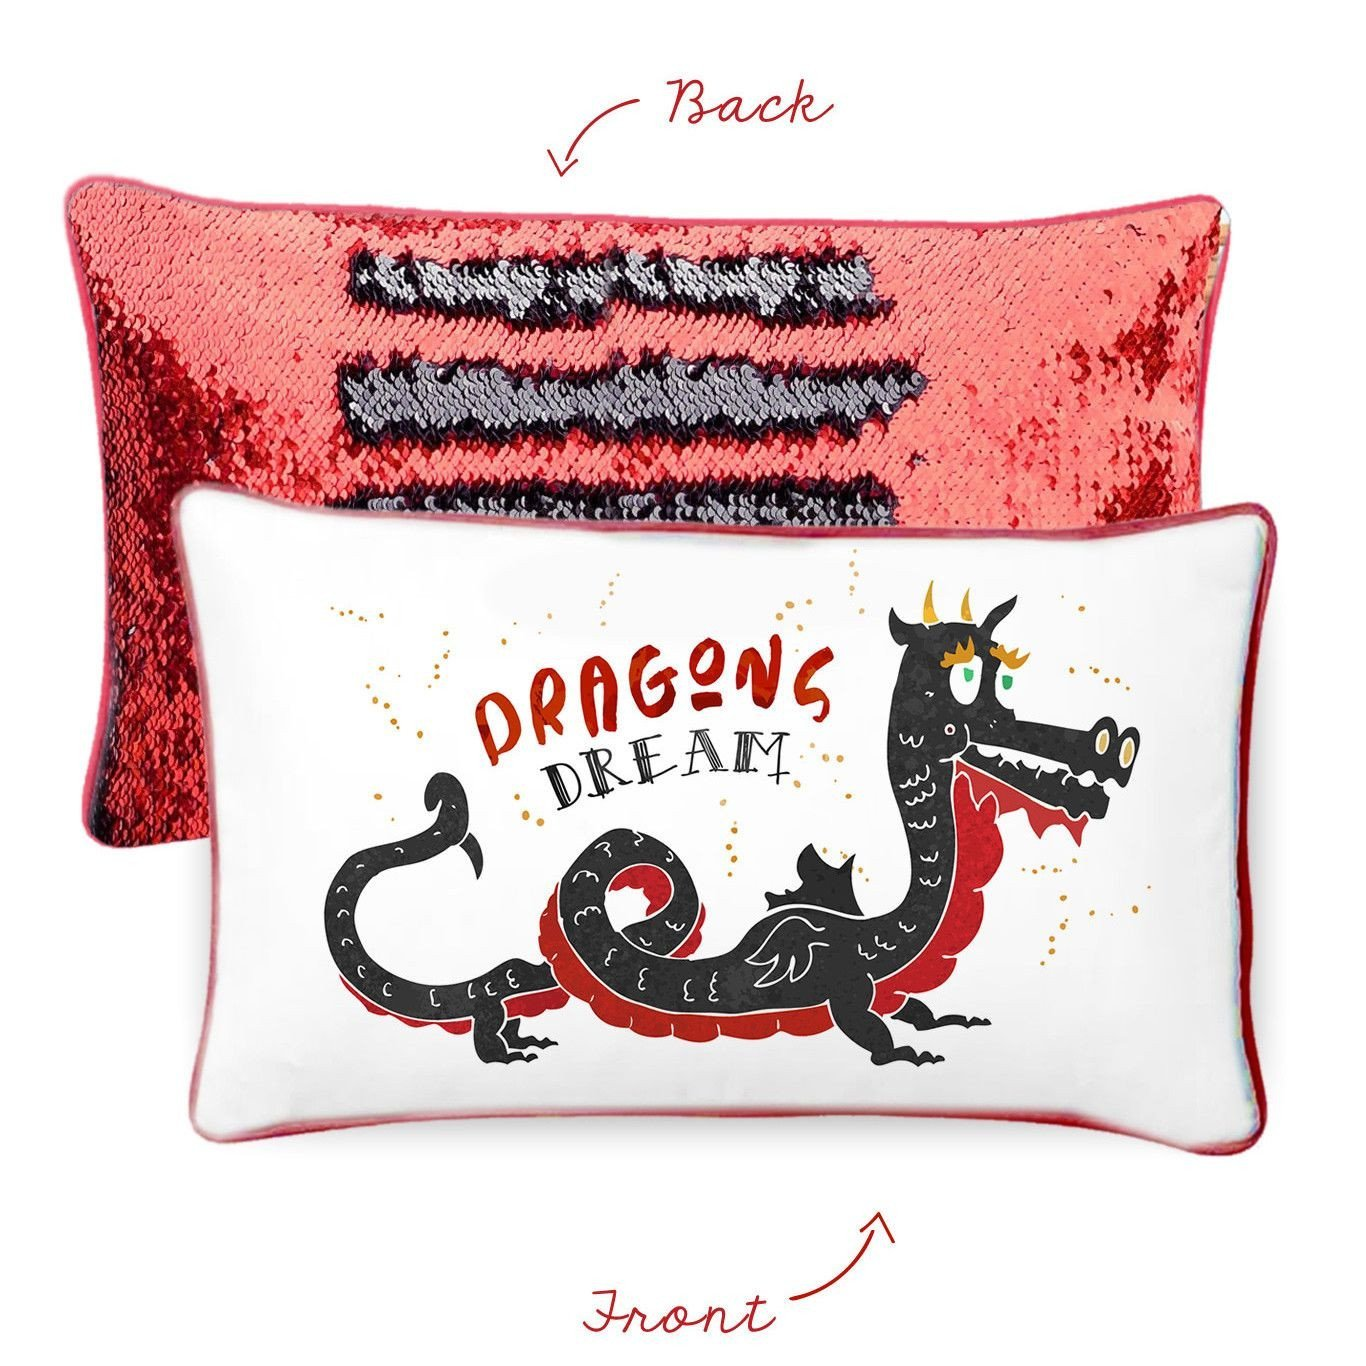 Mermaid Pillow - DRAGONS DREAM